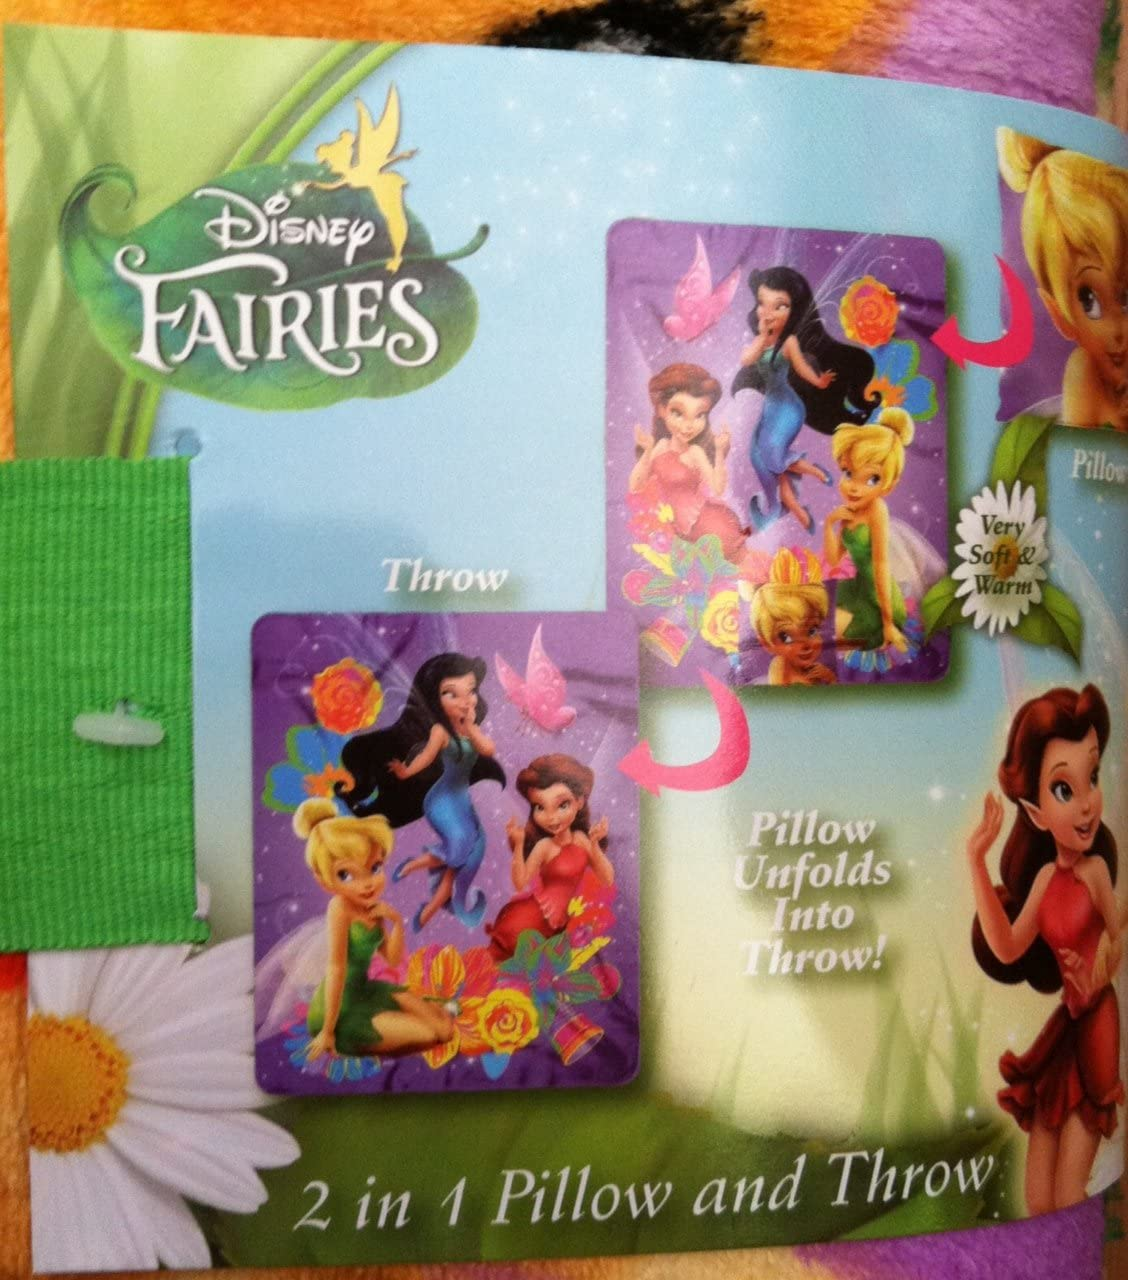 Disney Fairies Fairy Frolic 2 in 1 Pillow and Throw